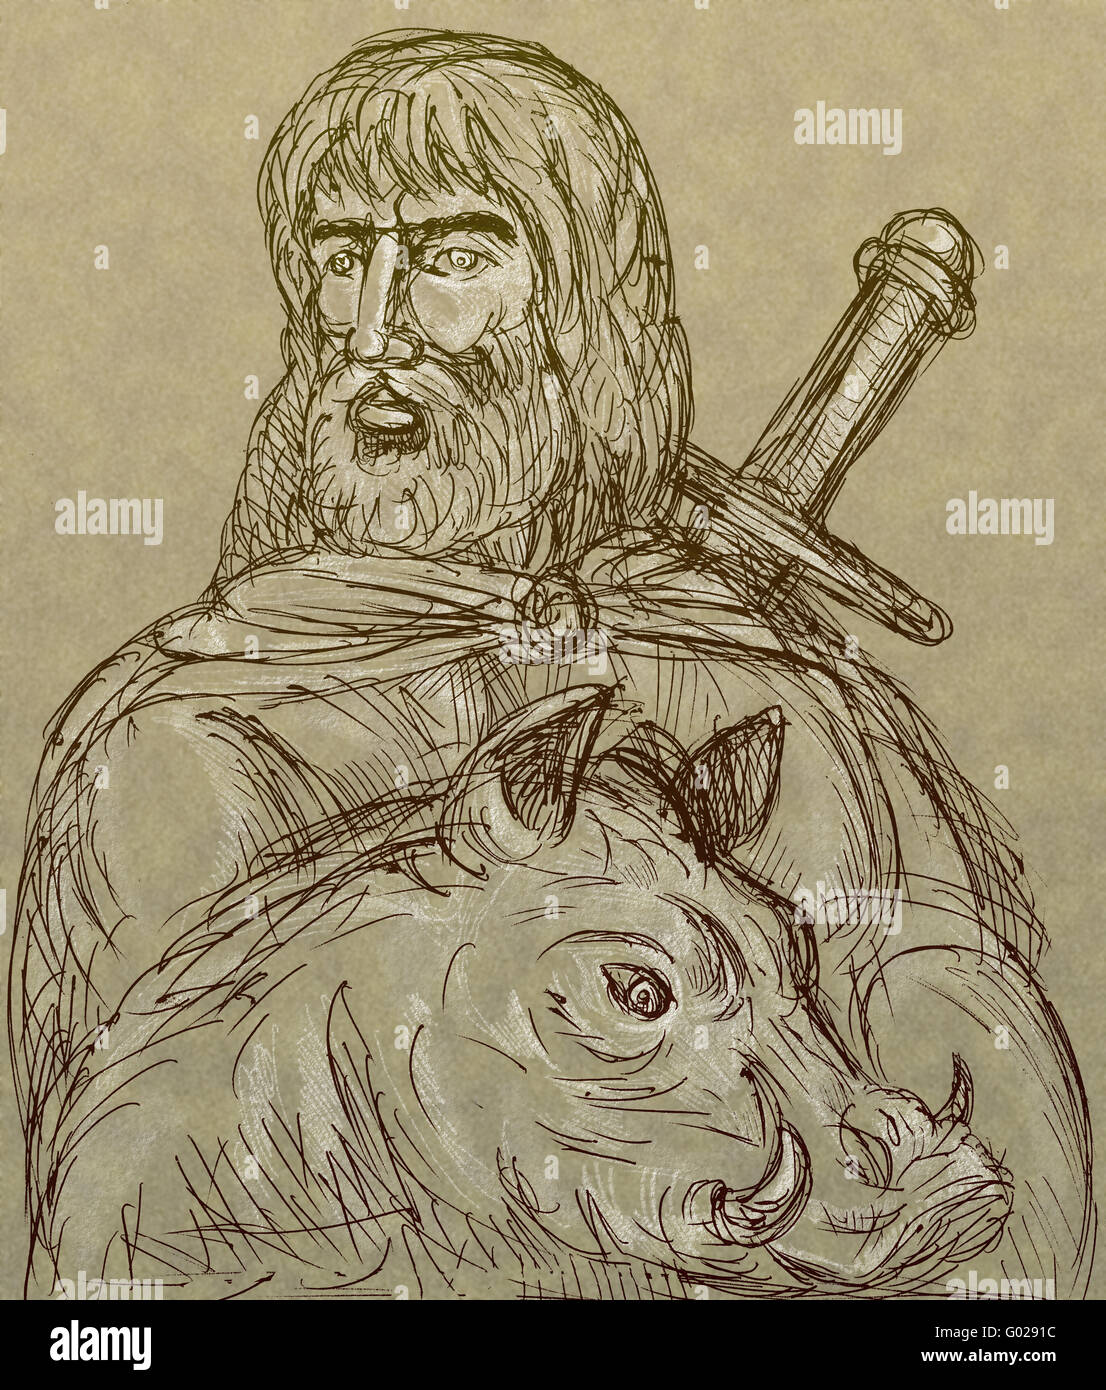 Norse god of agriculture with sword and boar - Stock Image